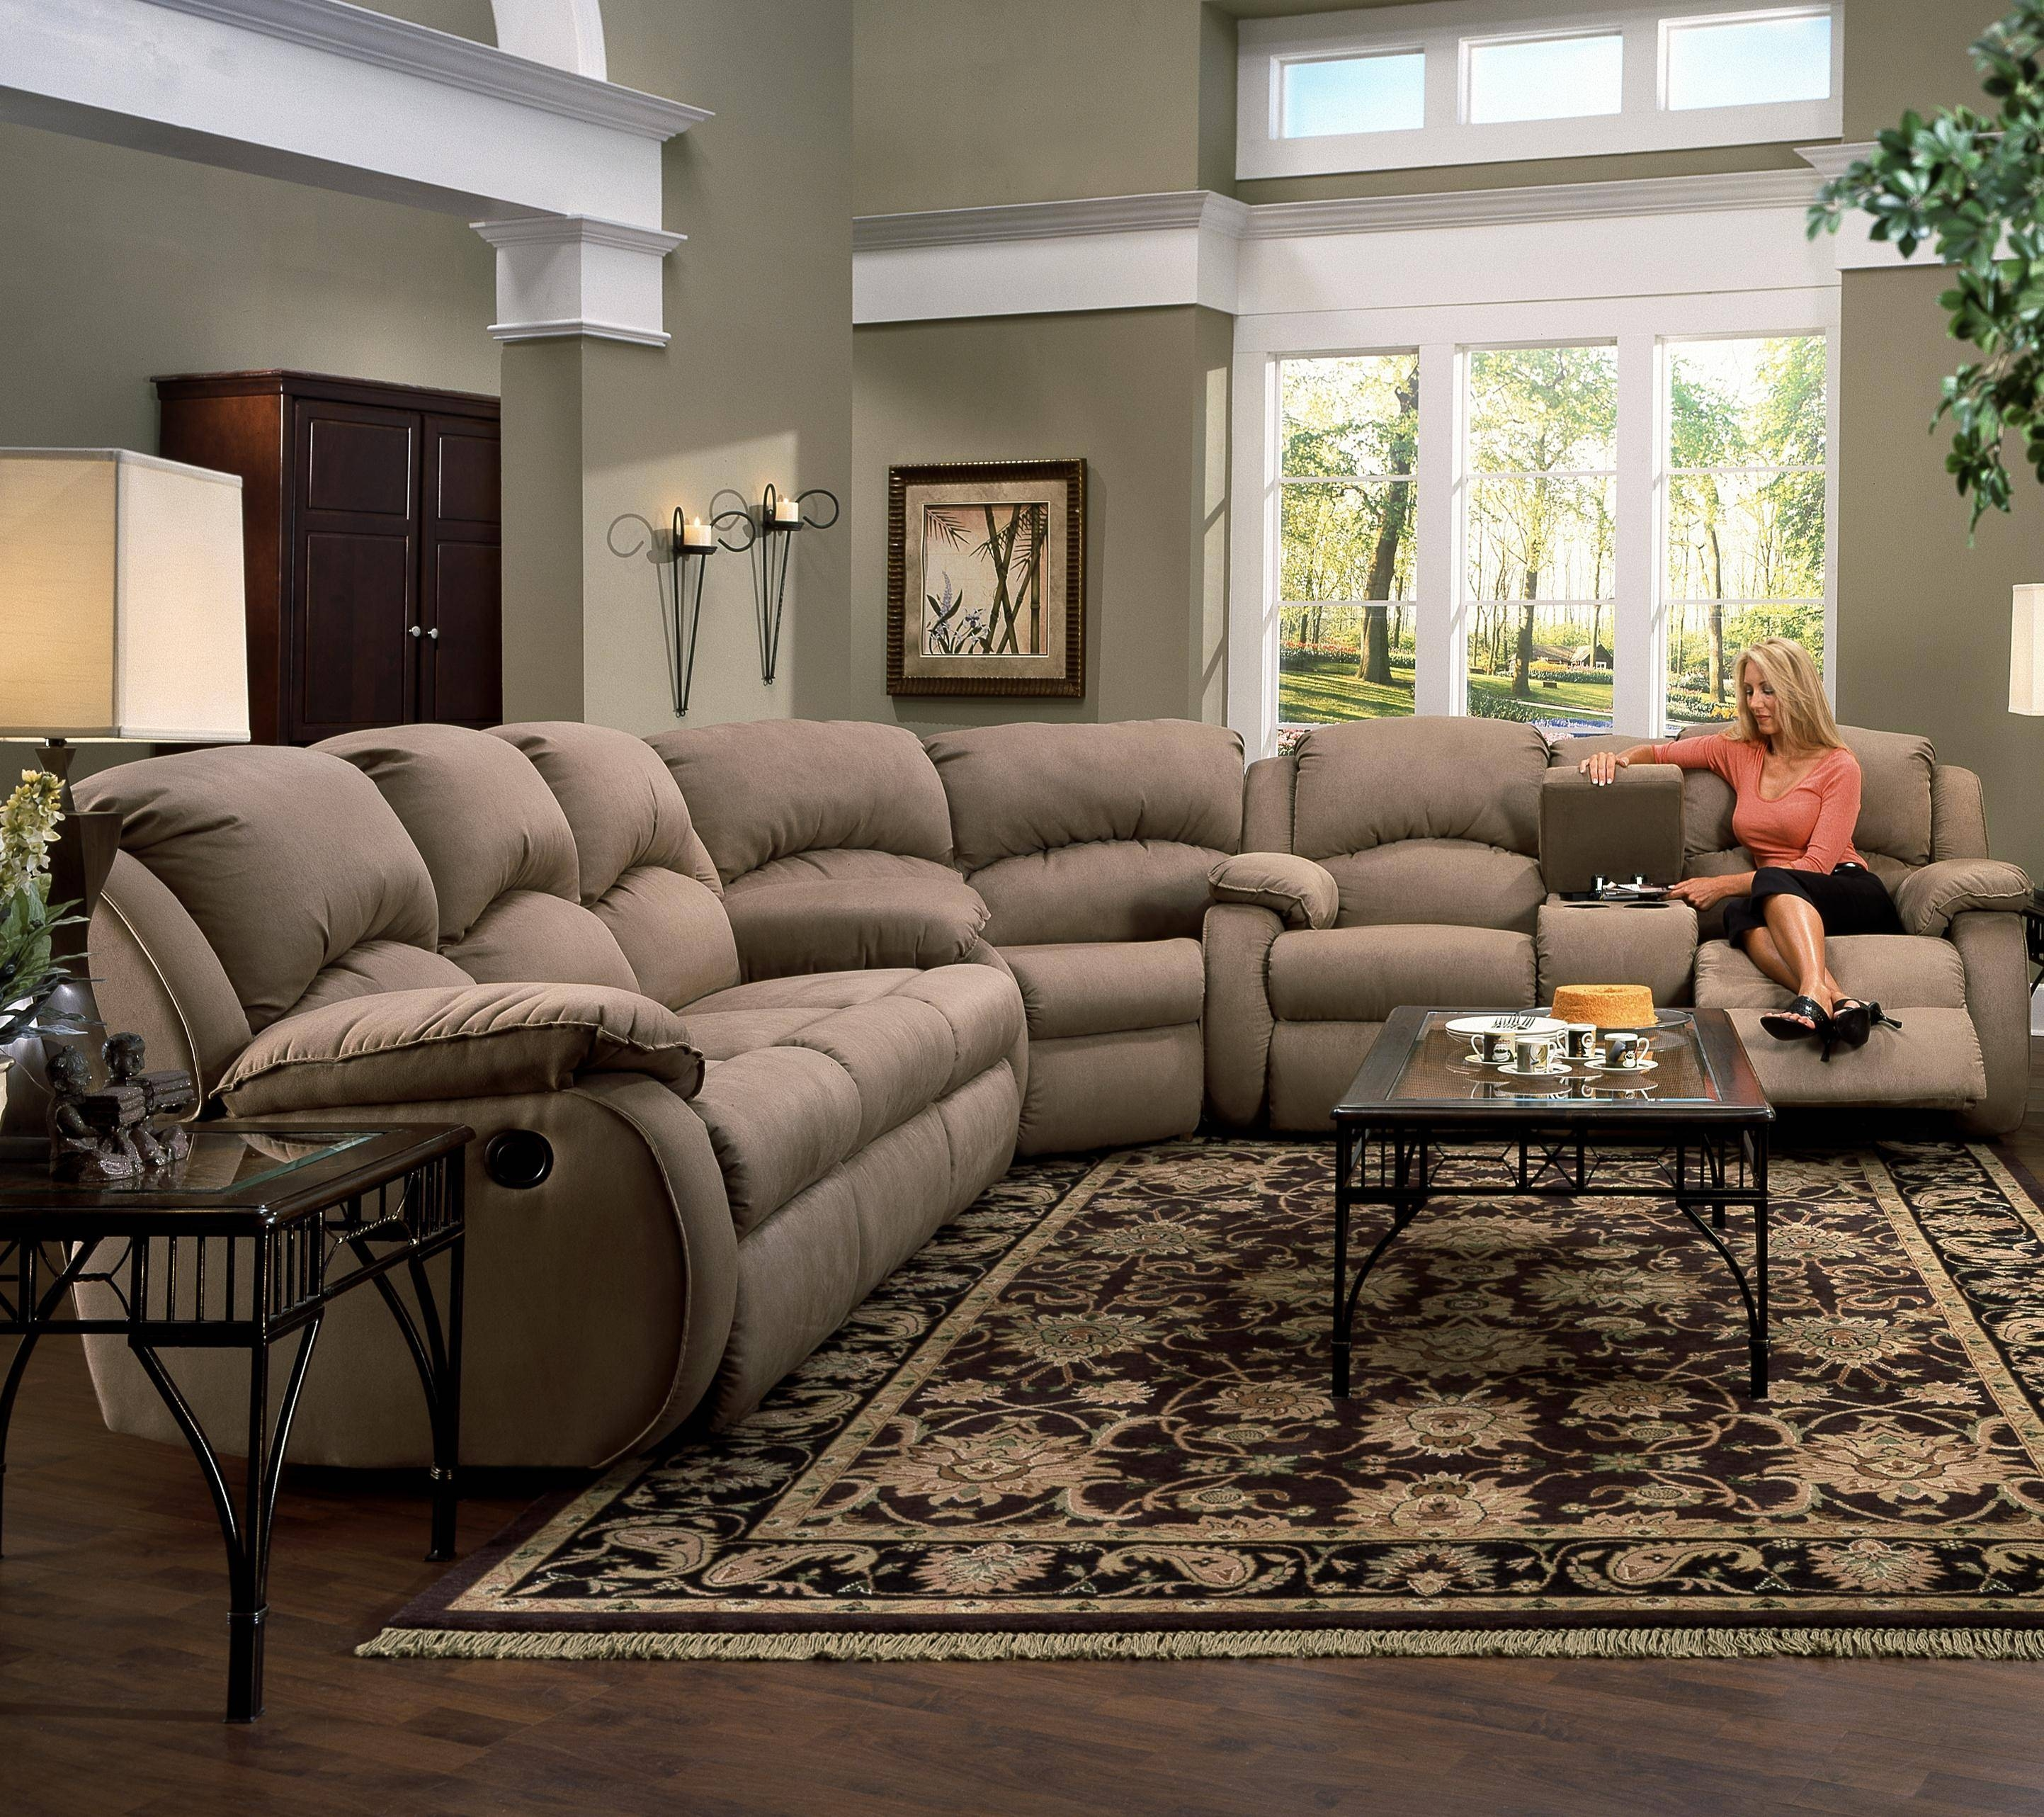 Furniture: Incredible Style Sectional Reclining Sofas For Your with regard to Sectional Sofa Recliners (Image 11 of 30)